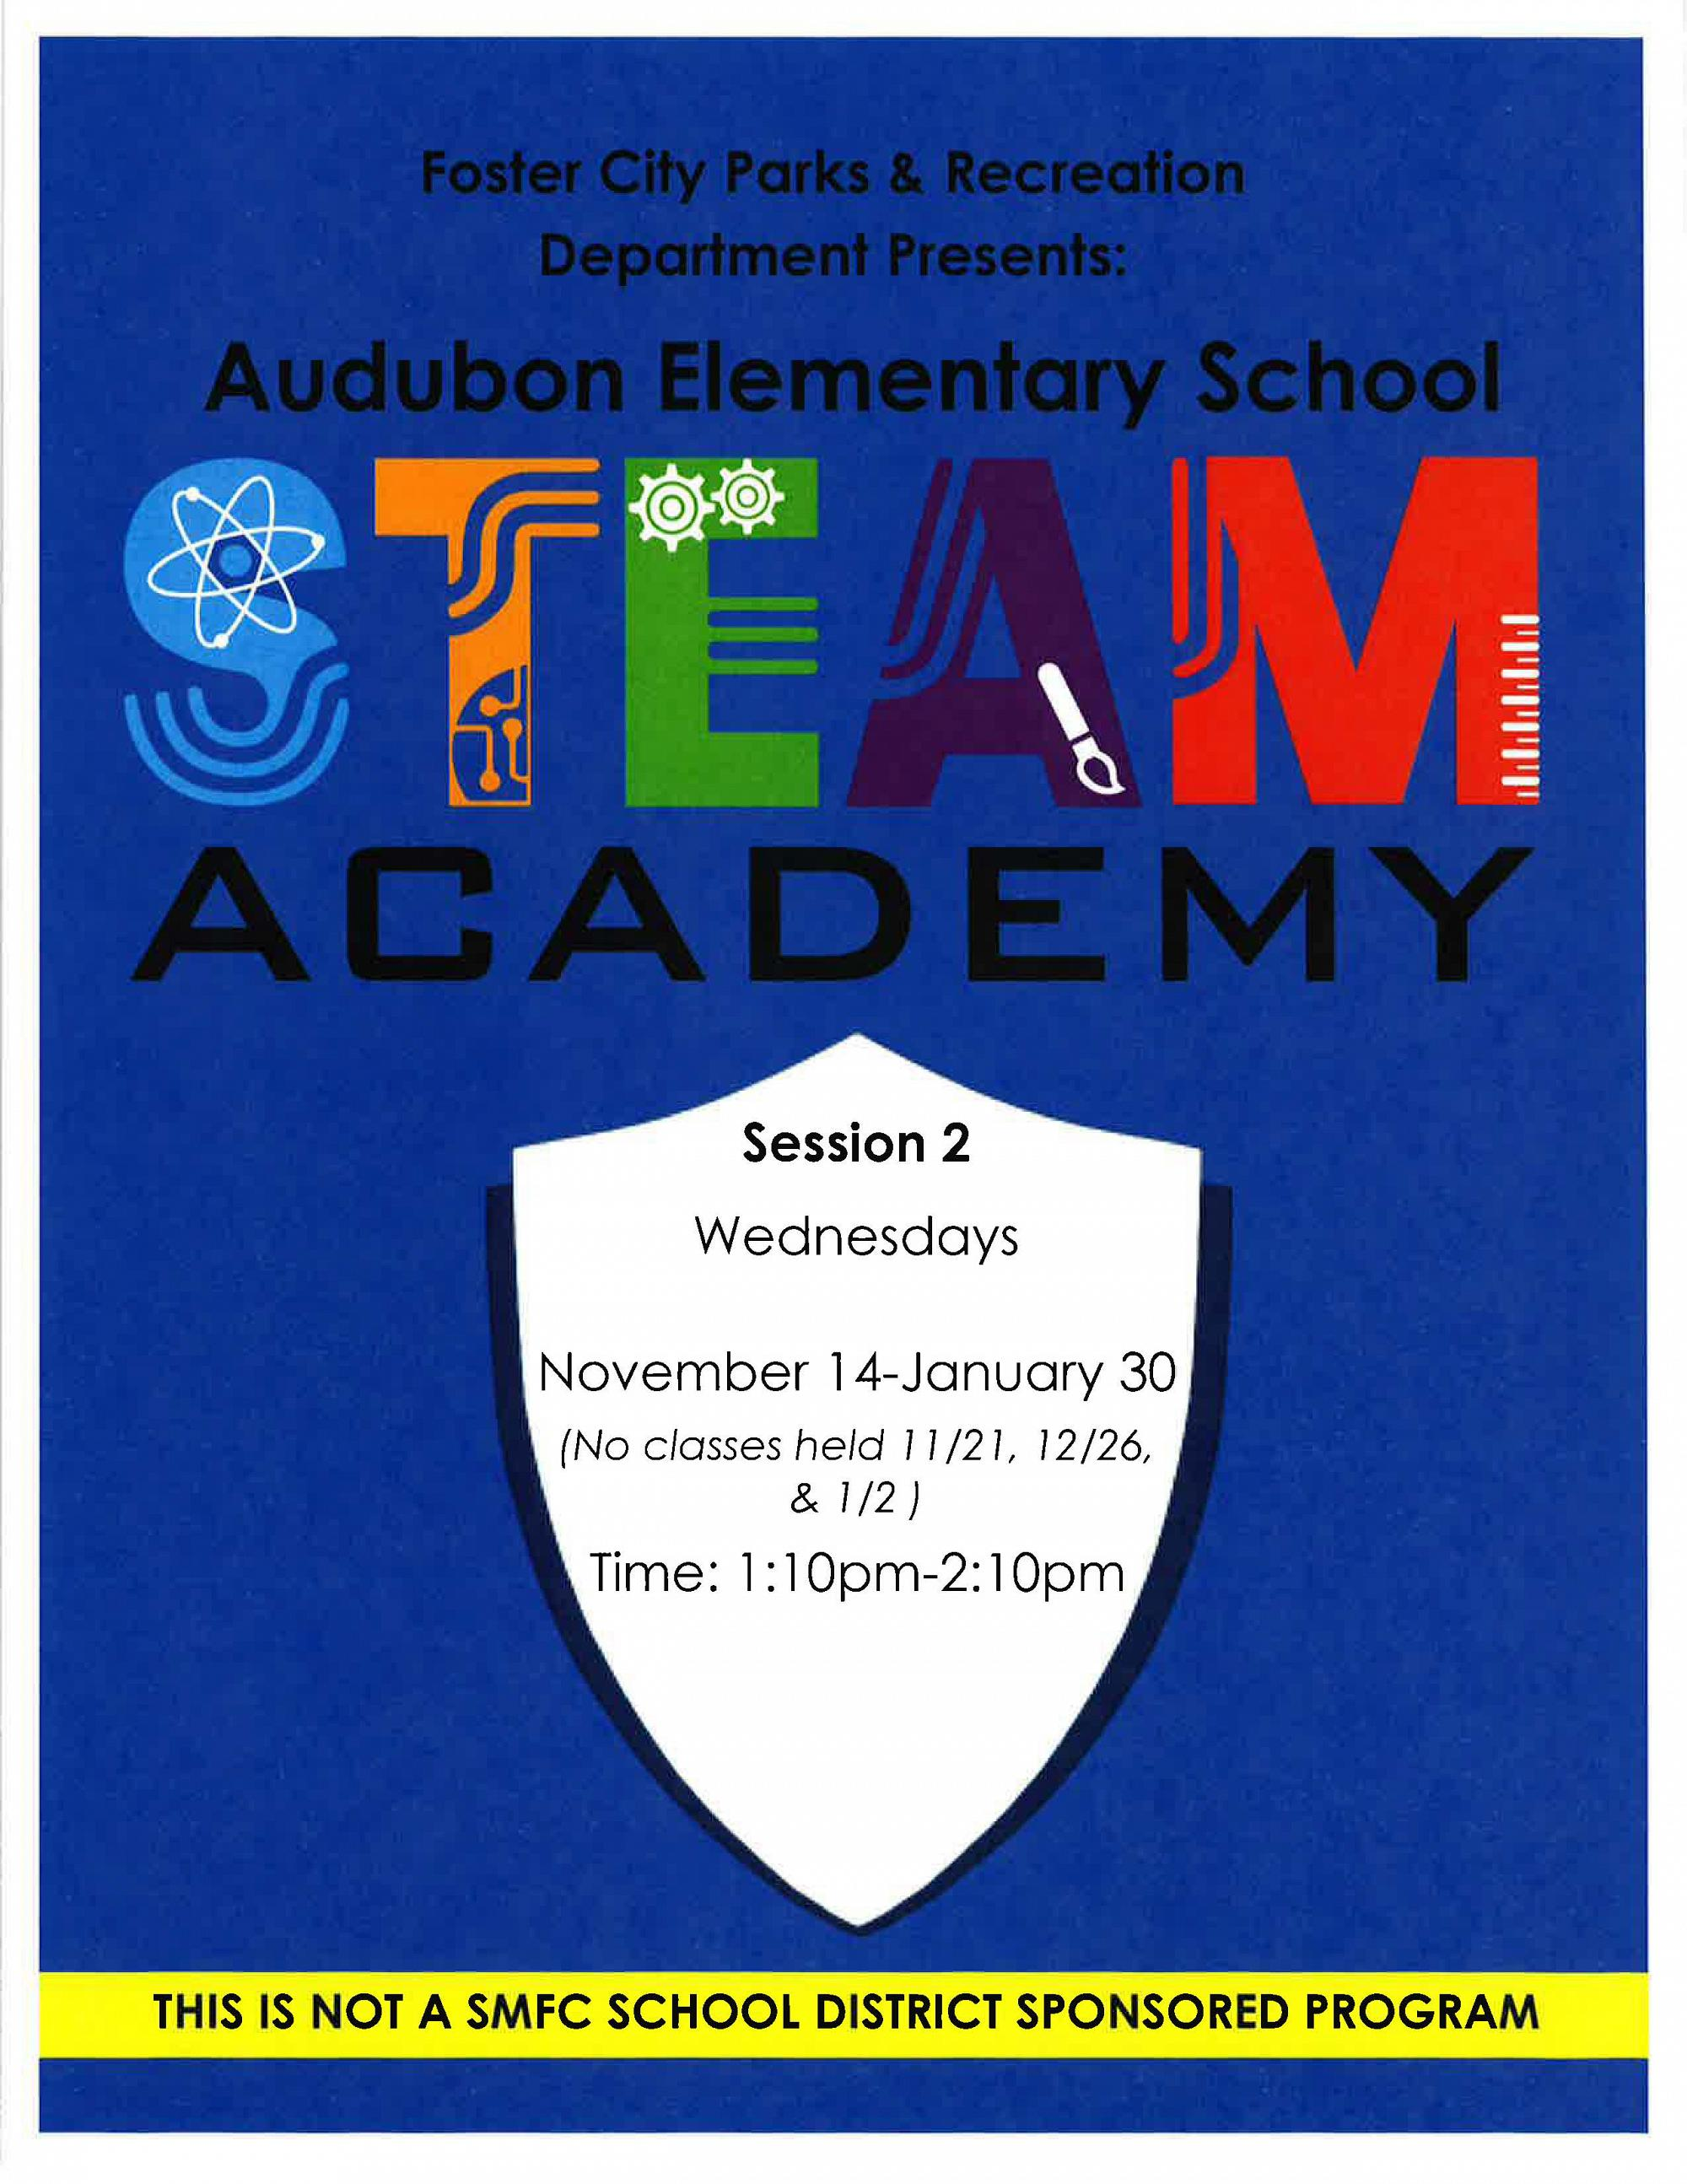 Audubon Elementary School STEAM Academy flyer